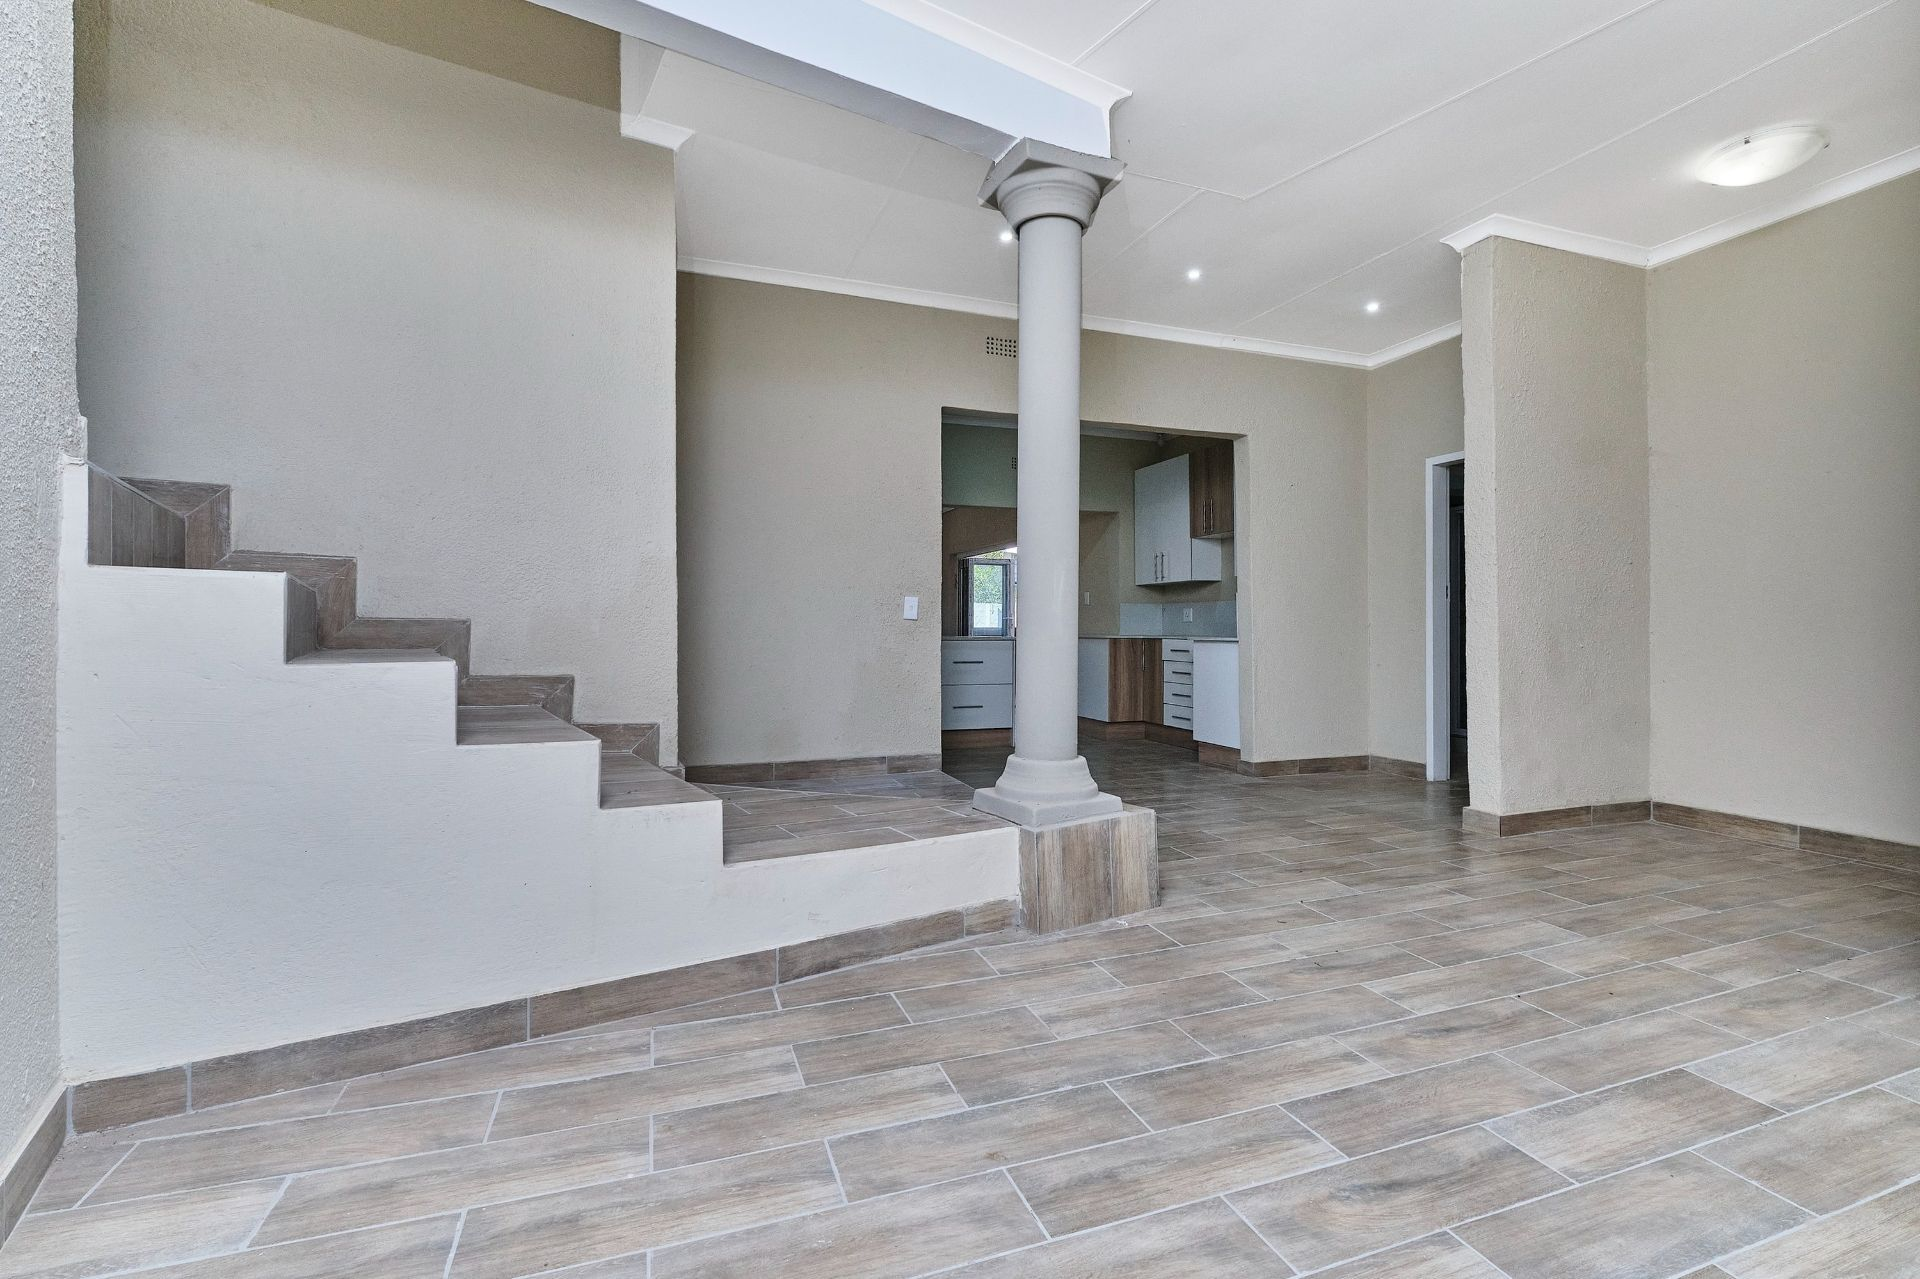 House in Olivedale - Entrance Hall .jpg